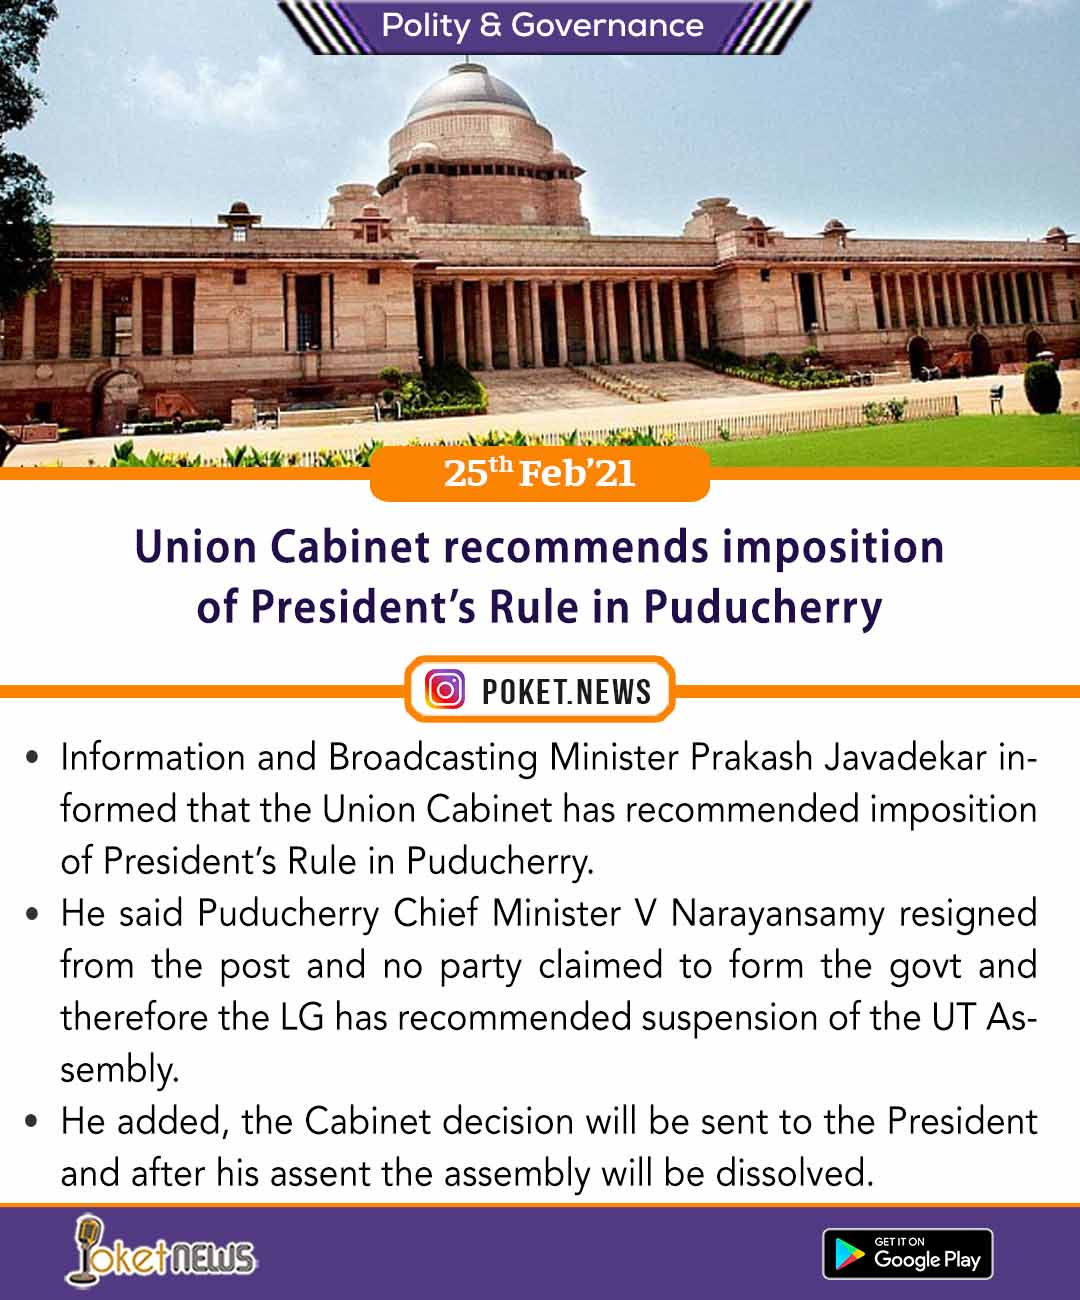 Union Cabinet recommends imposition of President's Rule in Puducherry